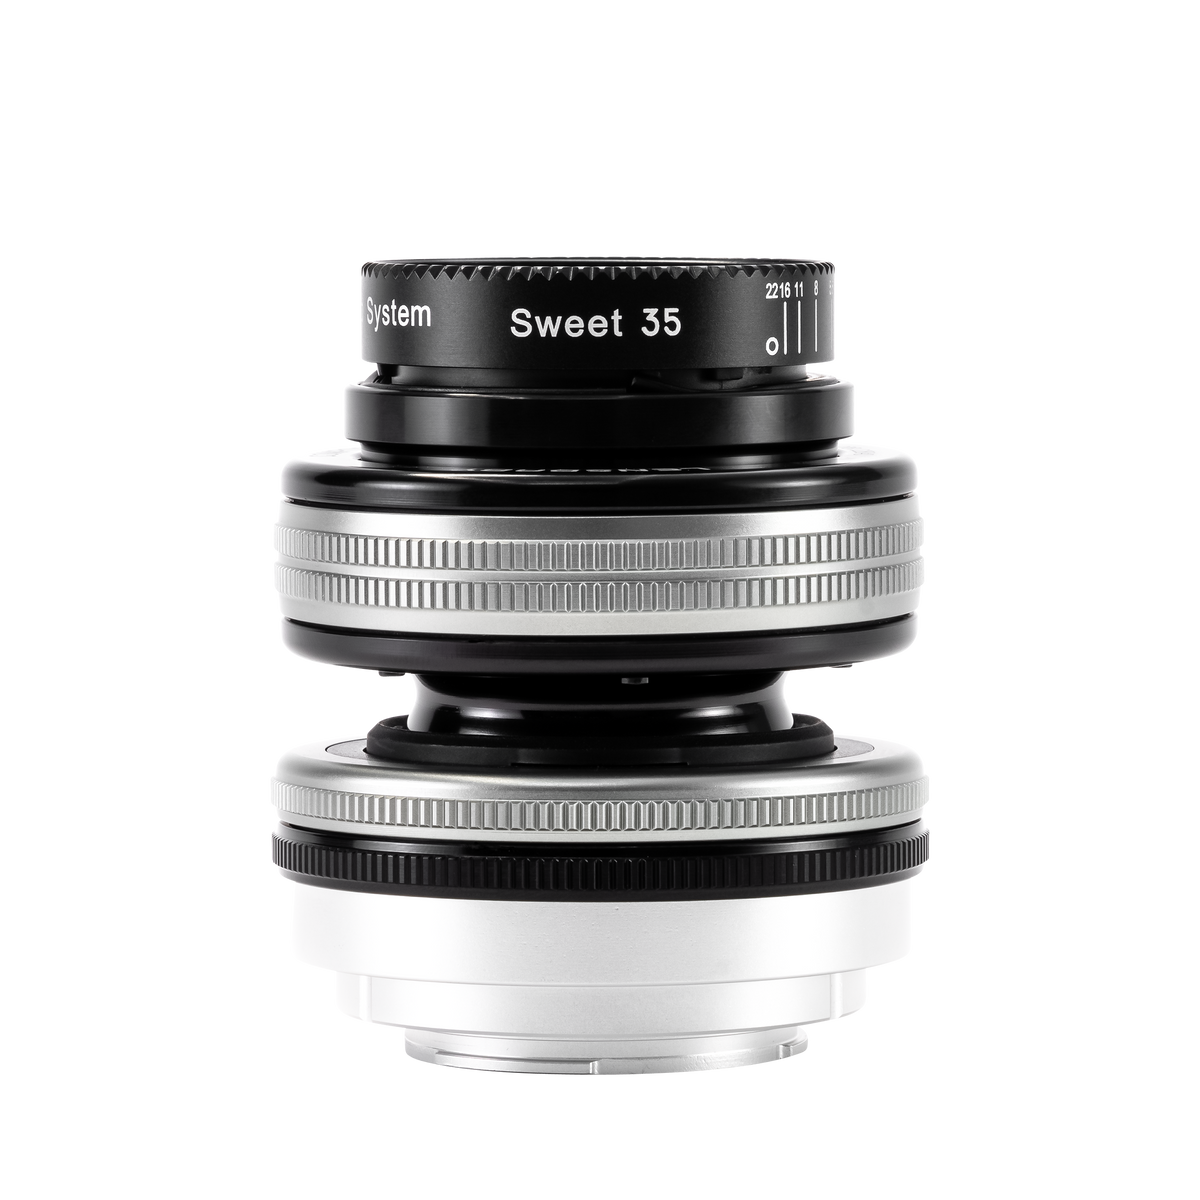 Composer Pro II with Sweet 35 - Lensbaby Creative Effect Camera Lenses